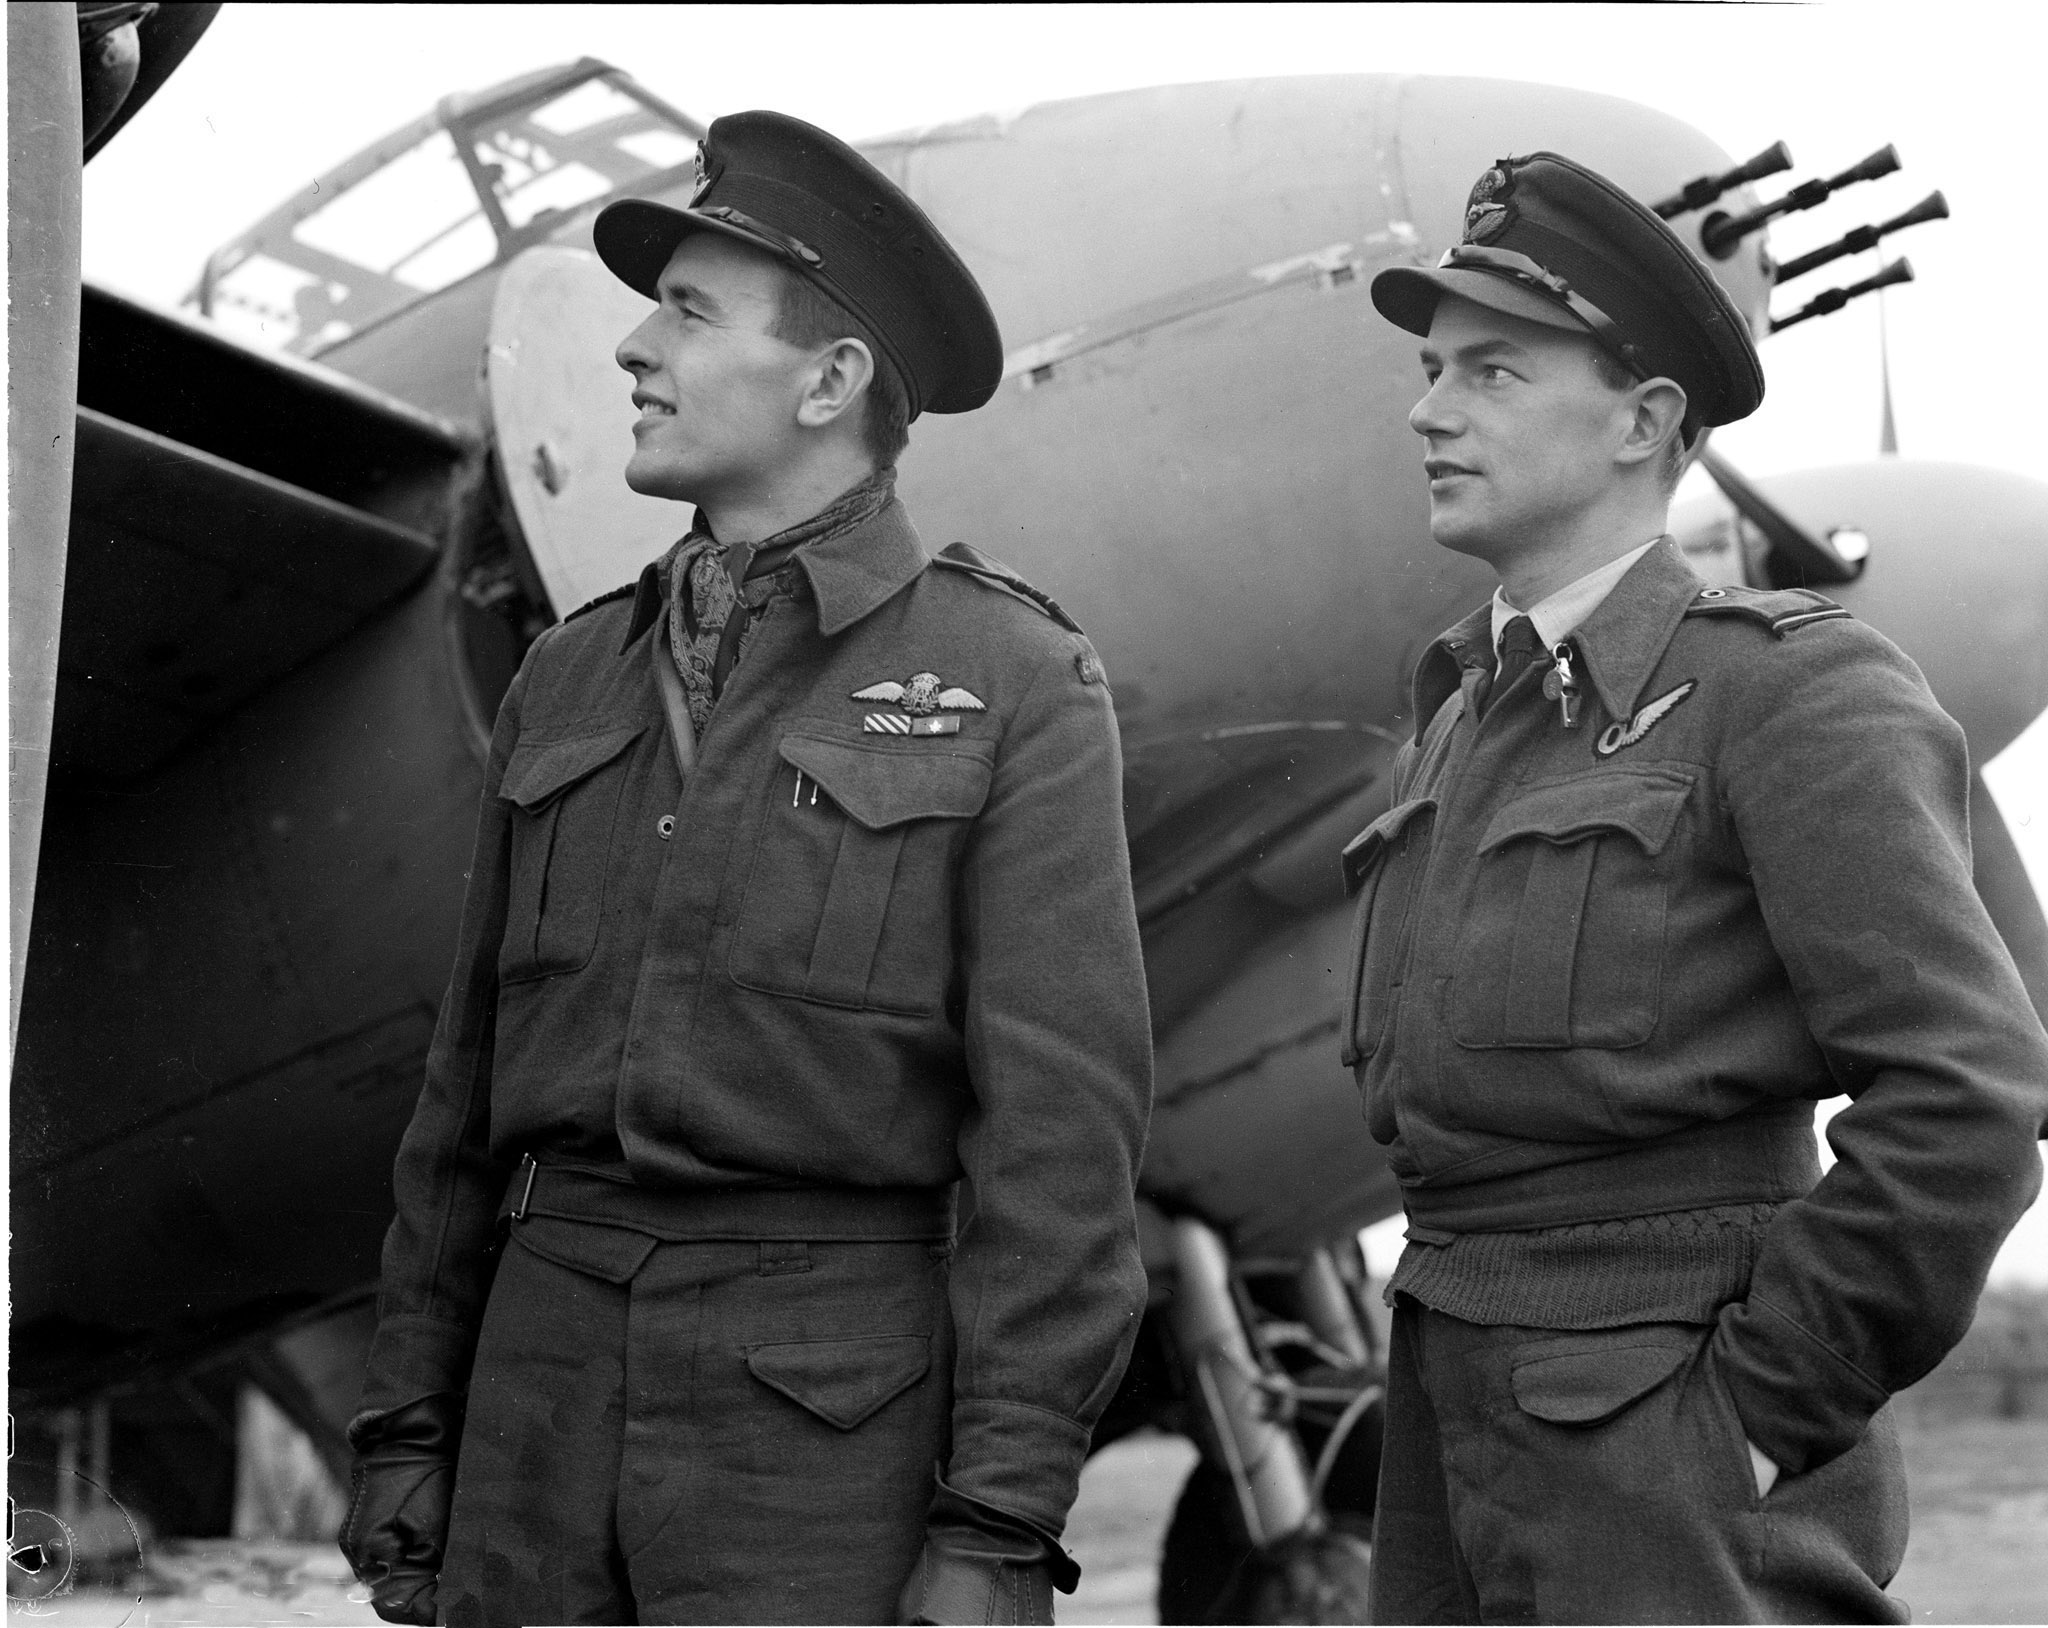 On August 29, 1944, Squadron Leader Russ Bannock (left), DFC, and his navigator, Flying Officer Robert Bruce look at the starboard engine of their Mosquito aircraft that brought them back to their station after their port engine was knocked out by flak. They destroyed two enemy aircraft in the air before they were forced to limp home on the one engine. In October 1944, Wing Commander Bannock took command of 418 Squadron; he was inducted into Canada's Aviation Hall of Fame in 1983. PHOTO: DND Archives, PL-33041